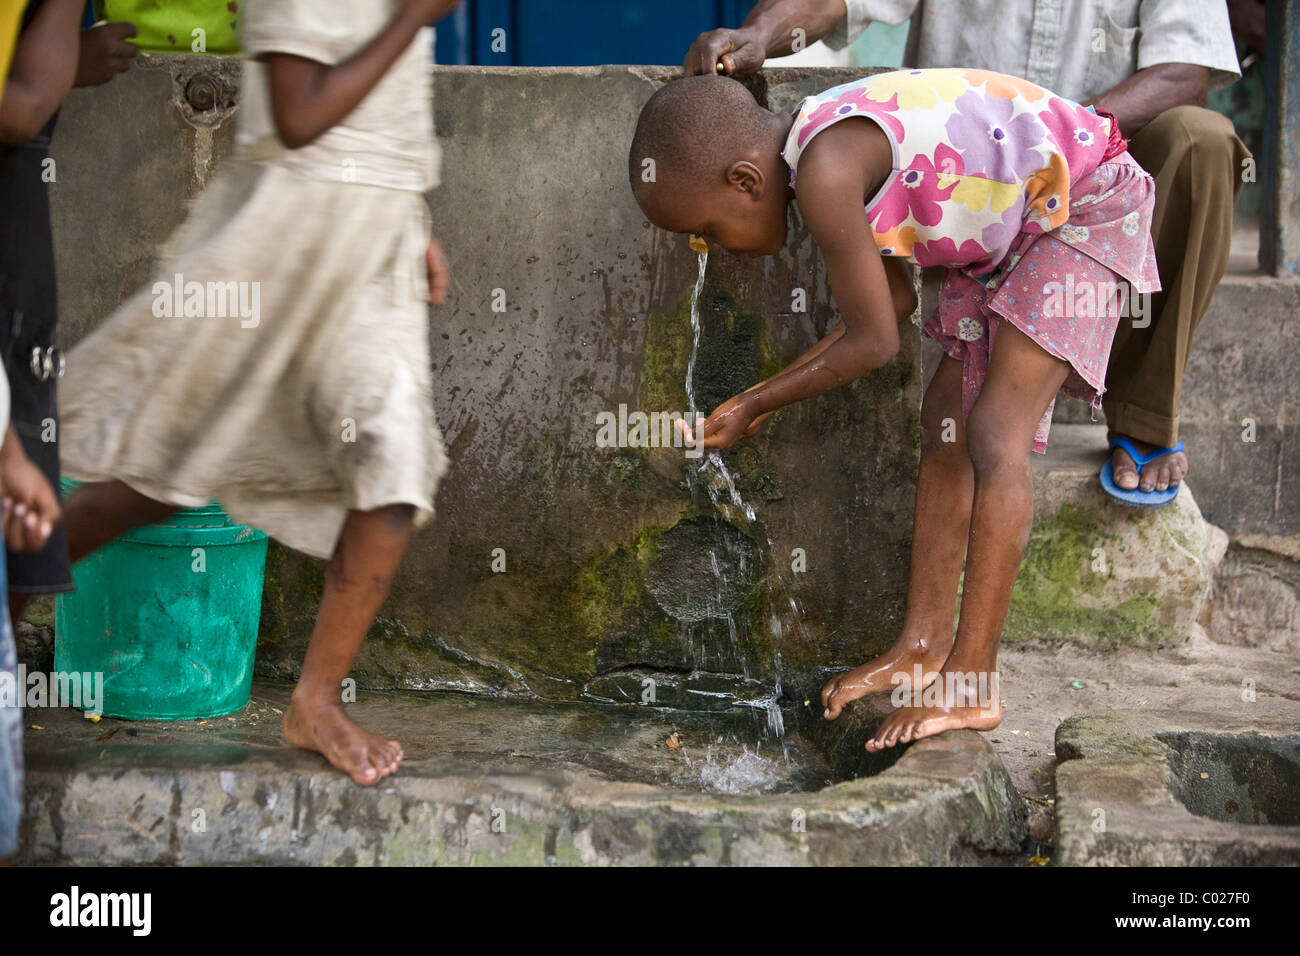 Children wash in a municipal water tap in Dar es Salaam, Tanzania, East Africa. - Stock Image